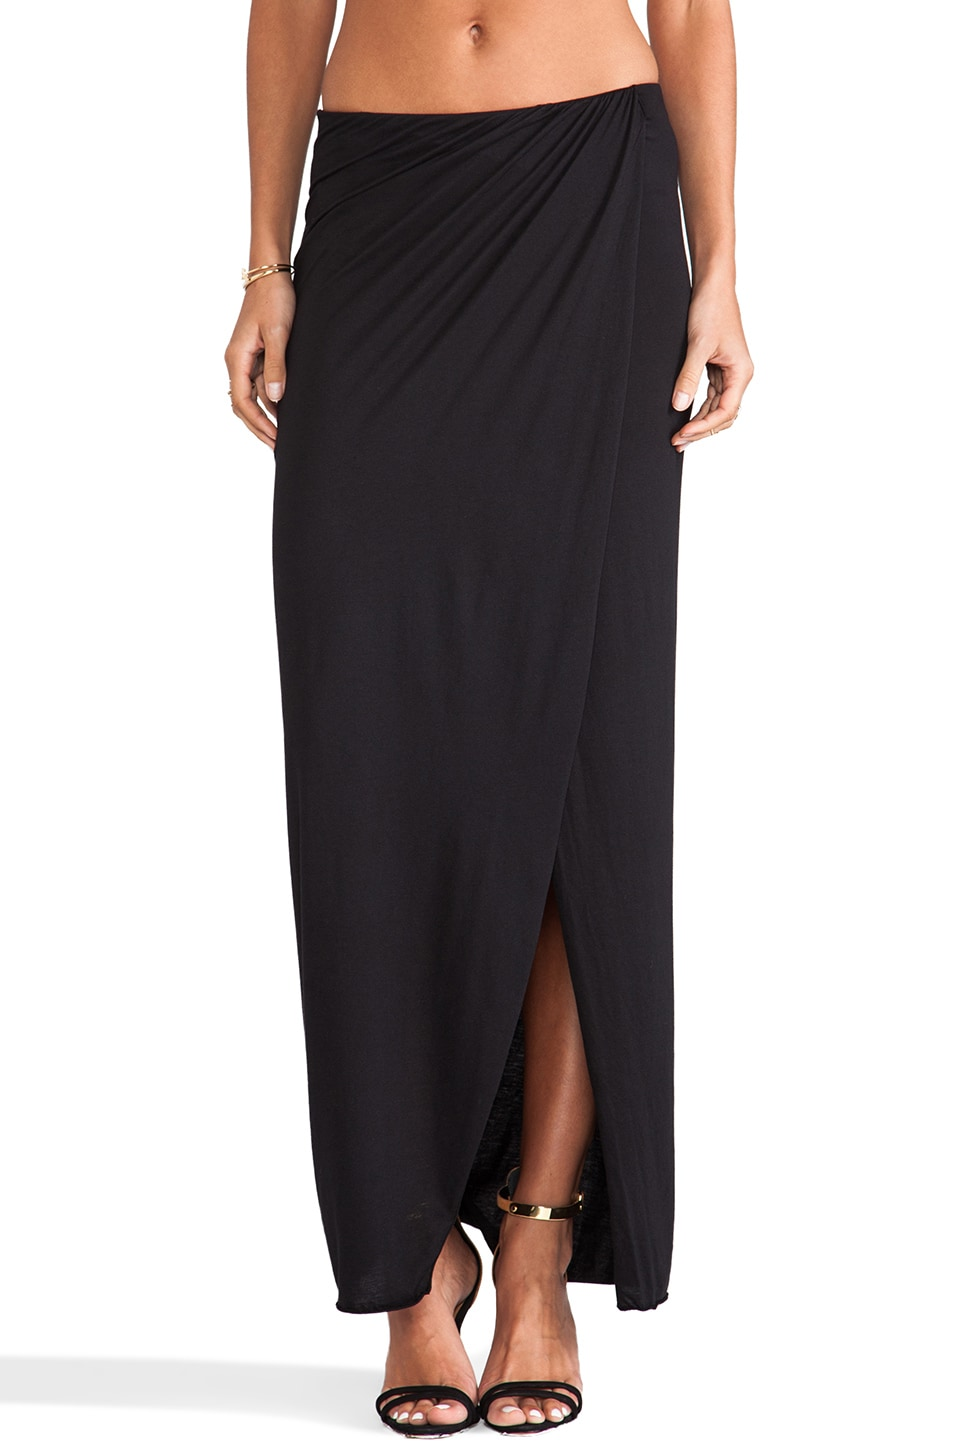 Bobi Jersey Maxi Skirt in Black